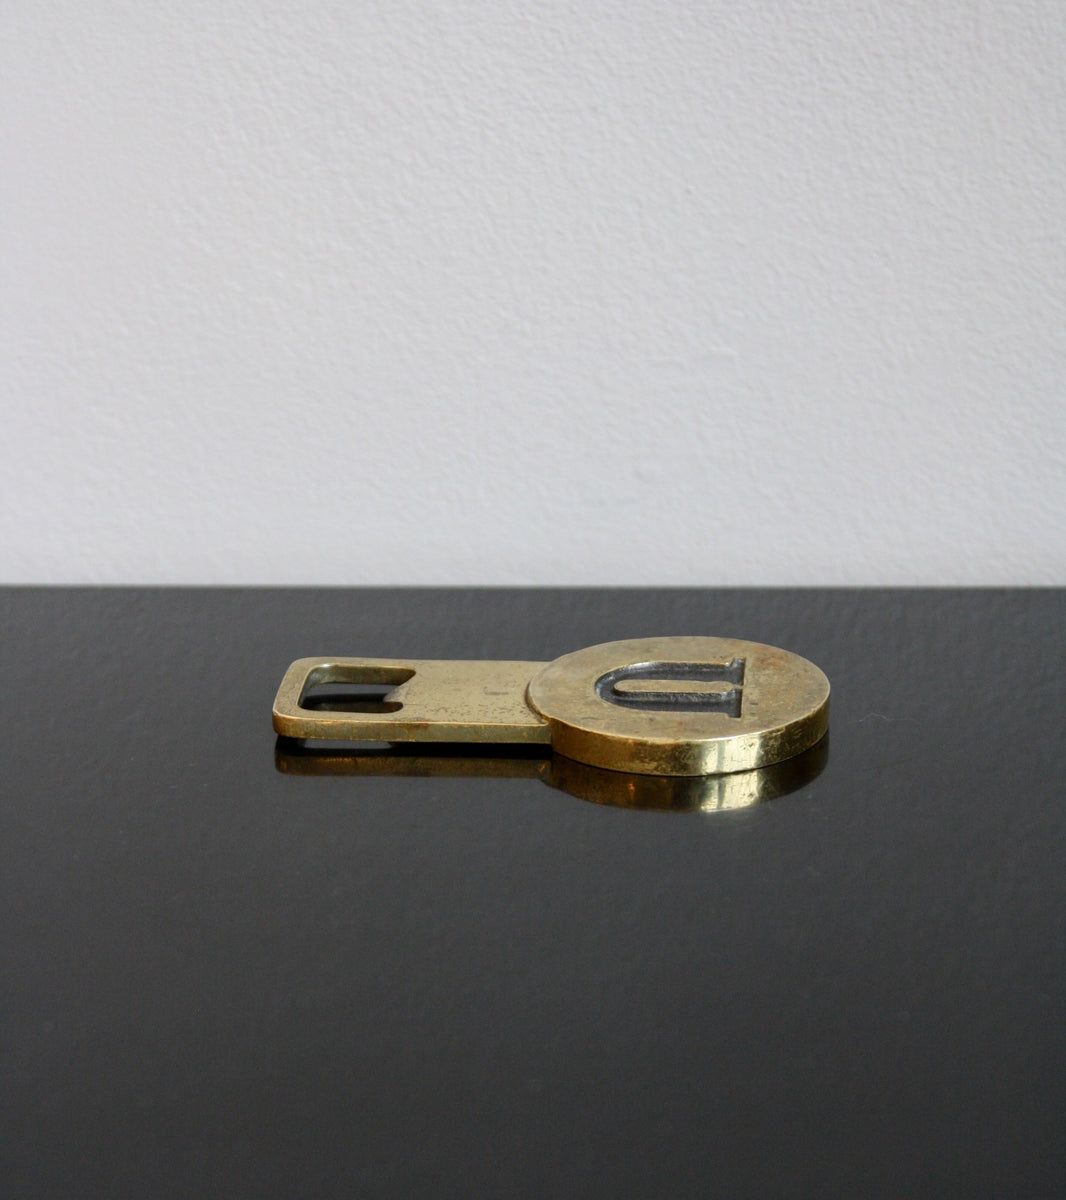 Initialed Bottle Opener by Wiener Werkstätte Influenced Carl Auböck - Image 5